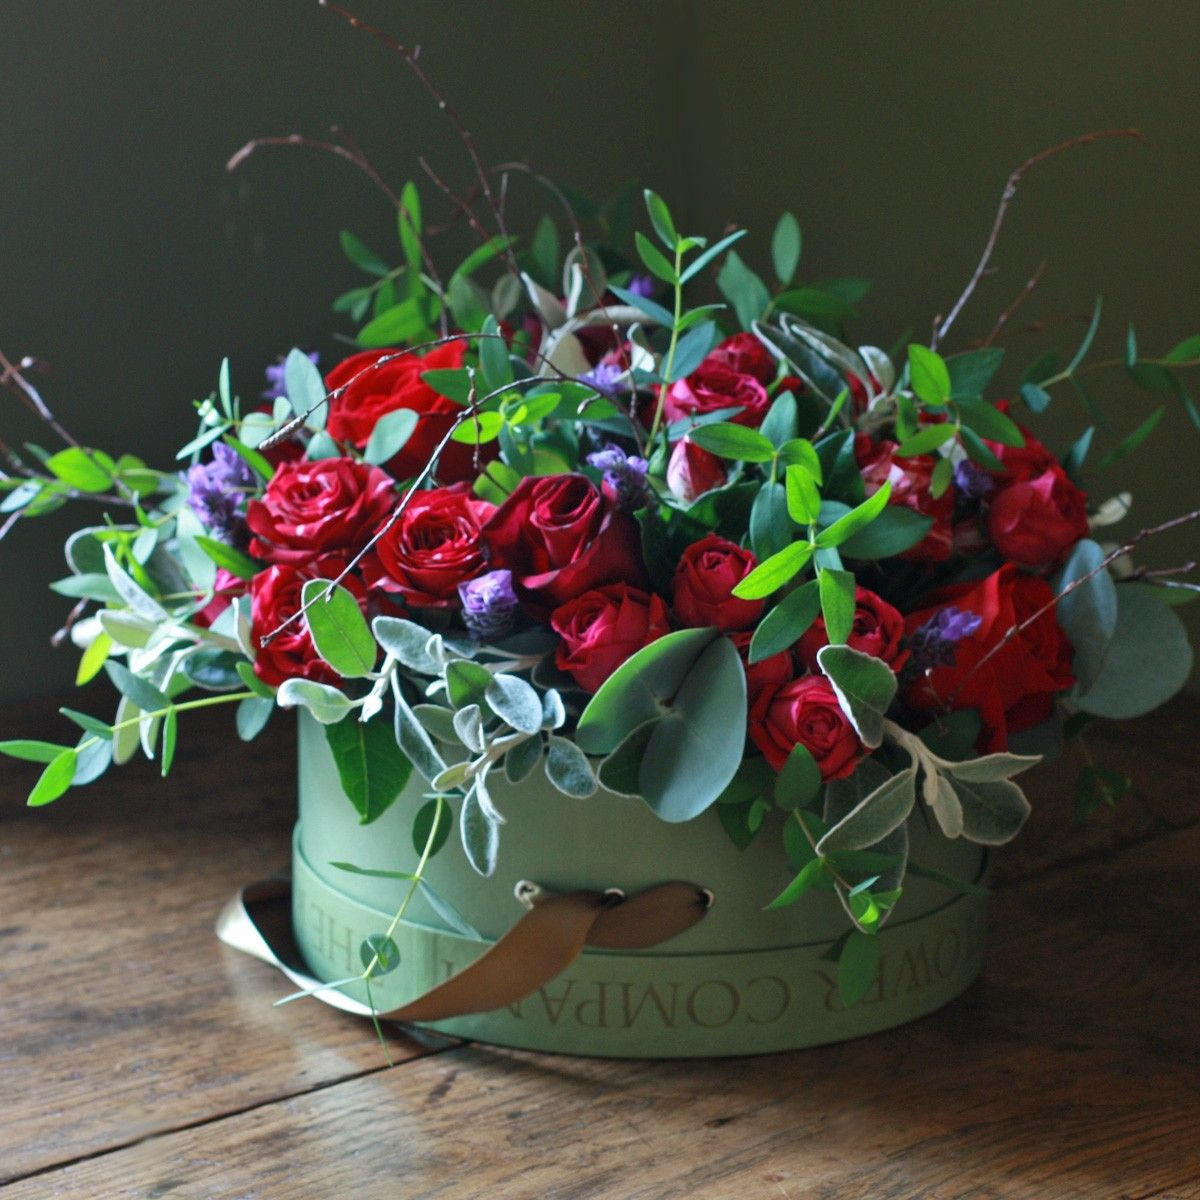 Luxury red rose and lavender hat box arrangement from